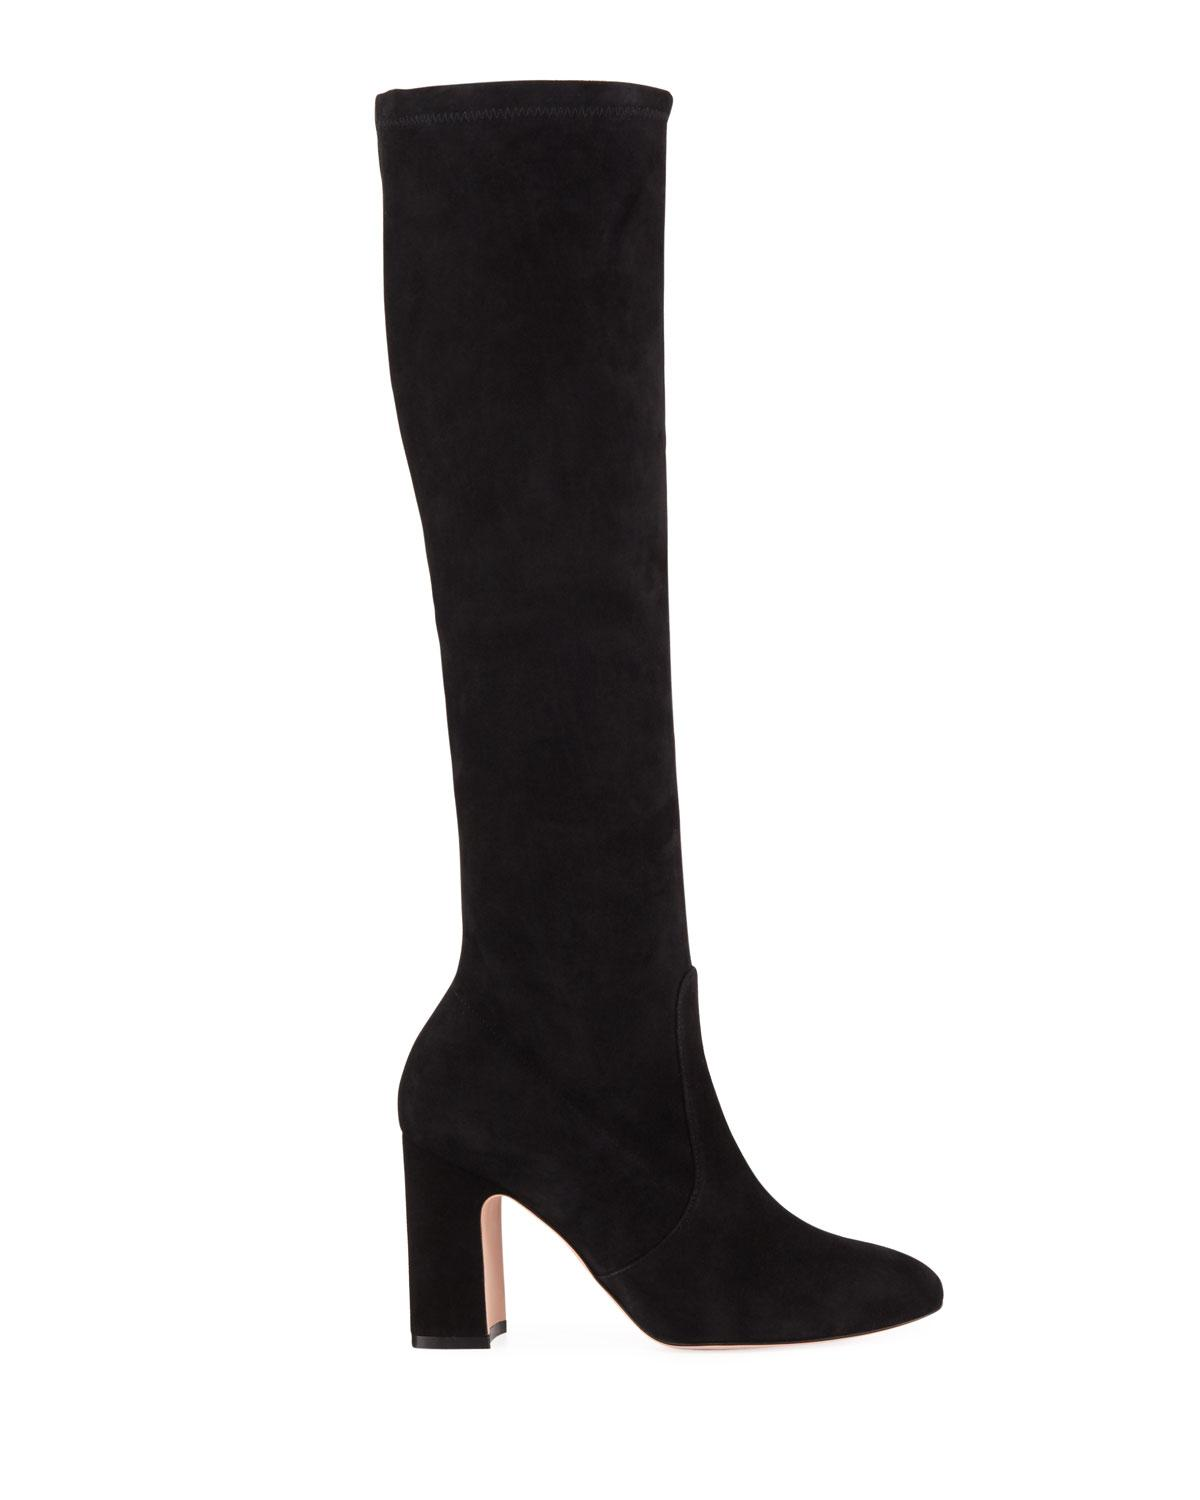 930e8e0f4066 Lyst - Stuart Weitzman Milla Over-the-knee Suede Boots in Black